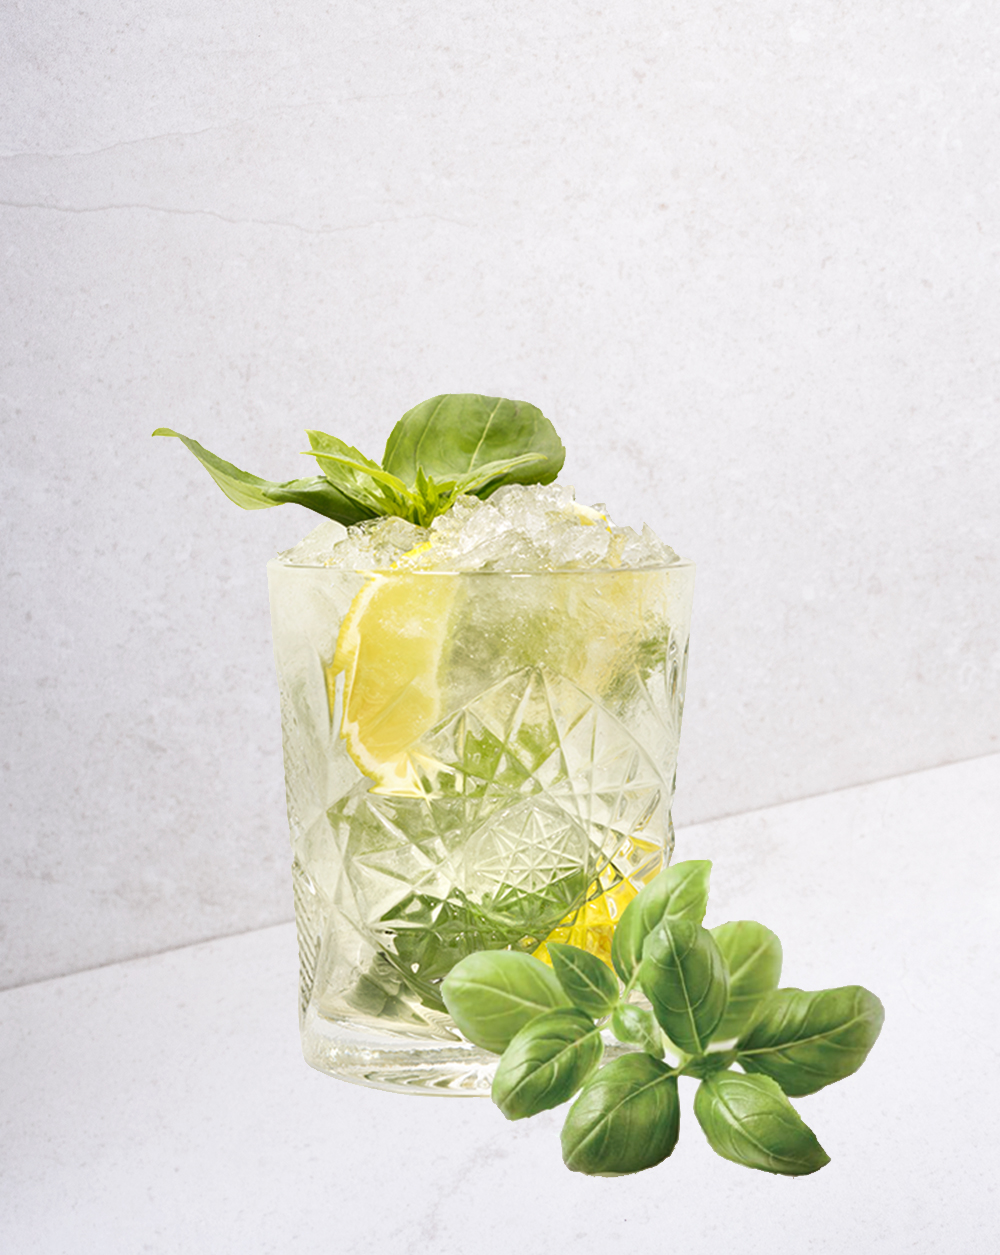 CRAFTER'S CRAFTED BASIL image